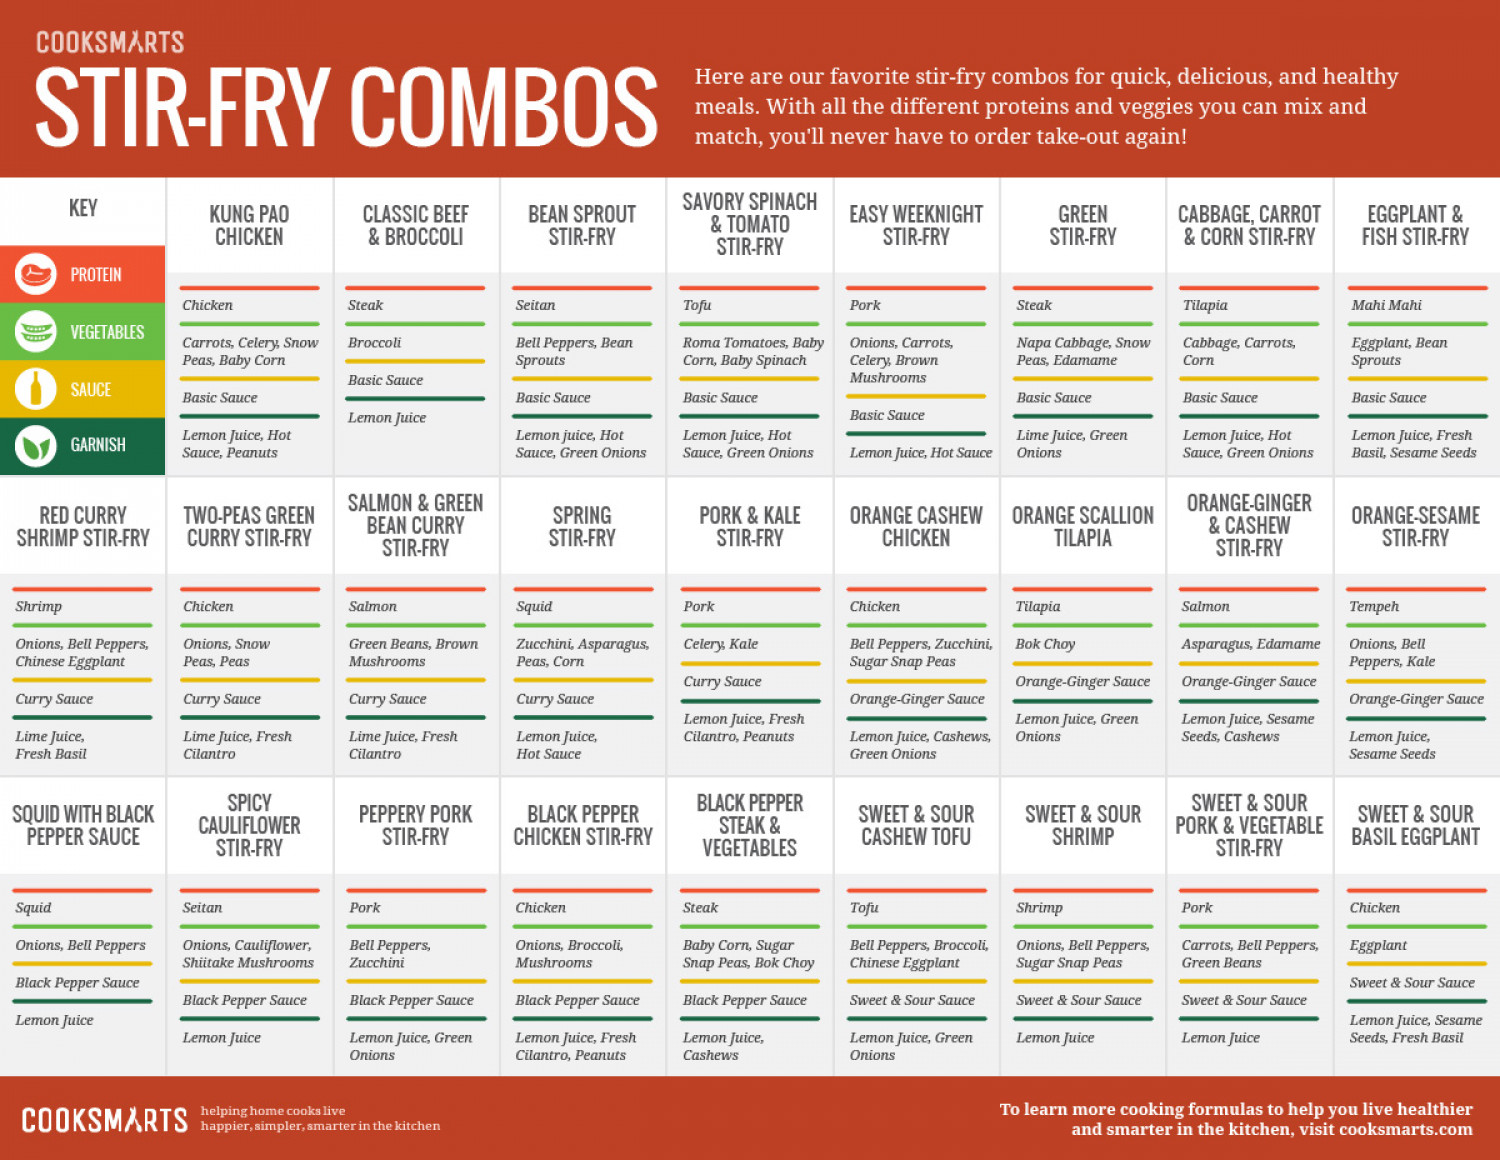 Guide to Stir-Fry Combos Infographic